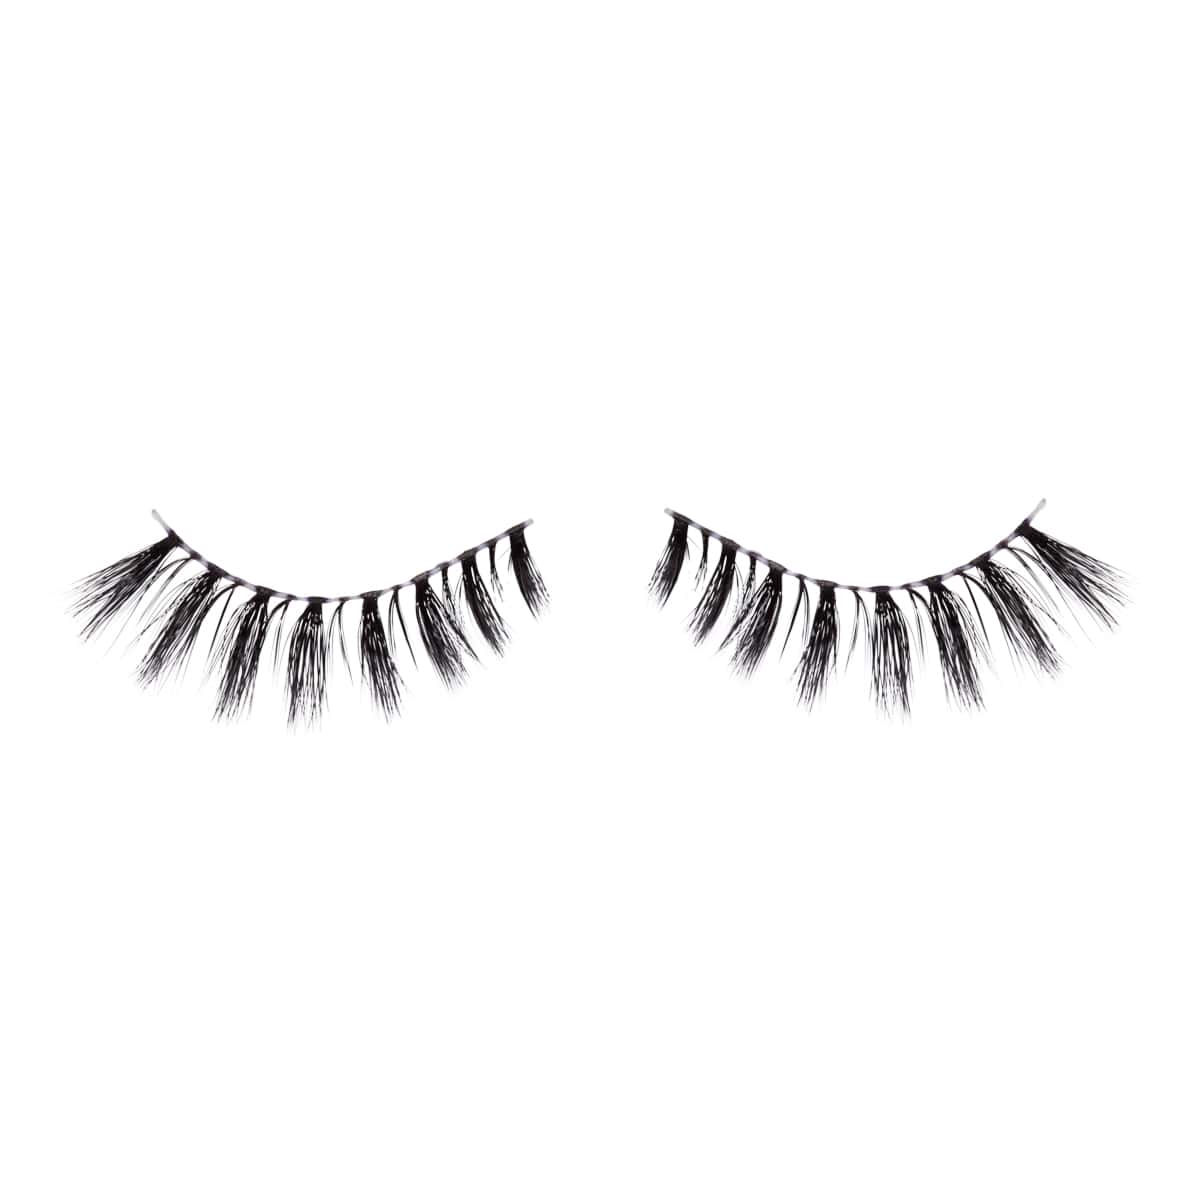 Pur Pro Eyelashes Pr The Complexion Authority